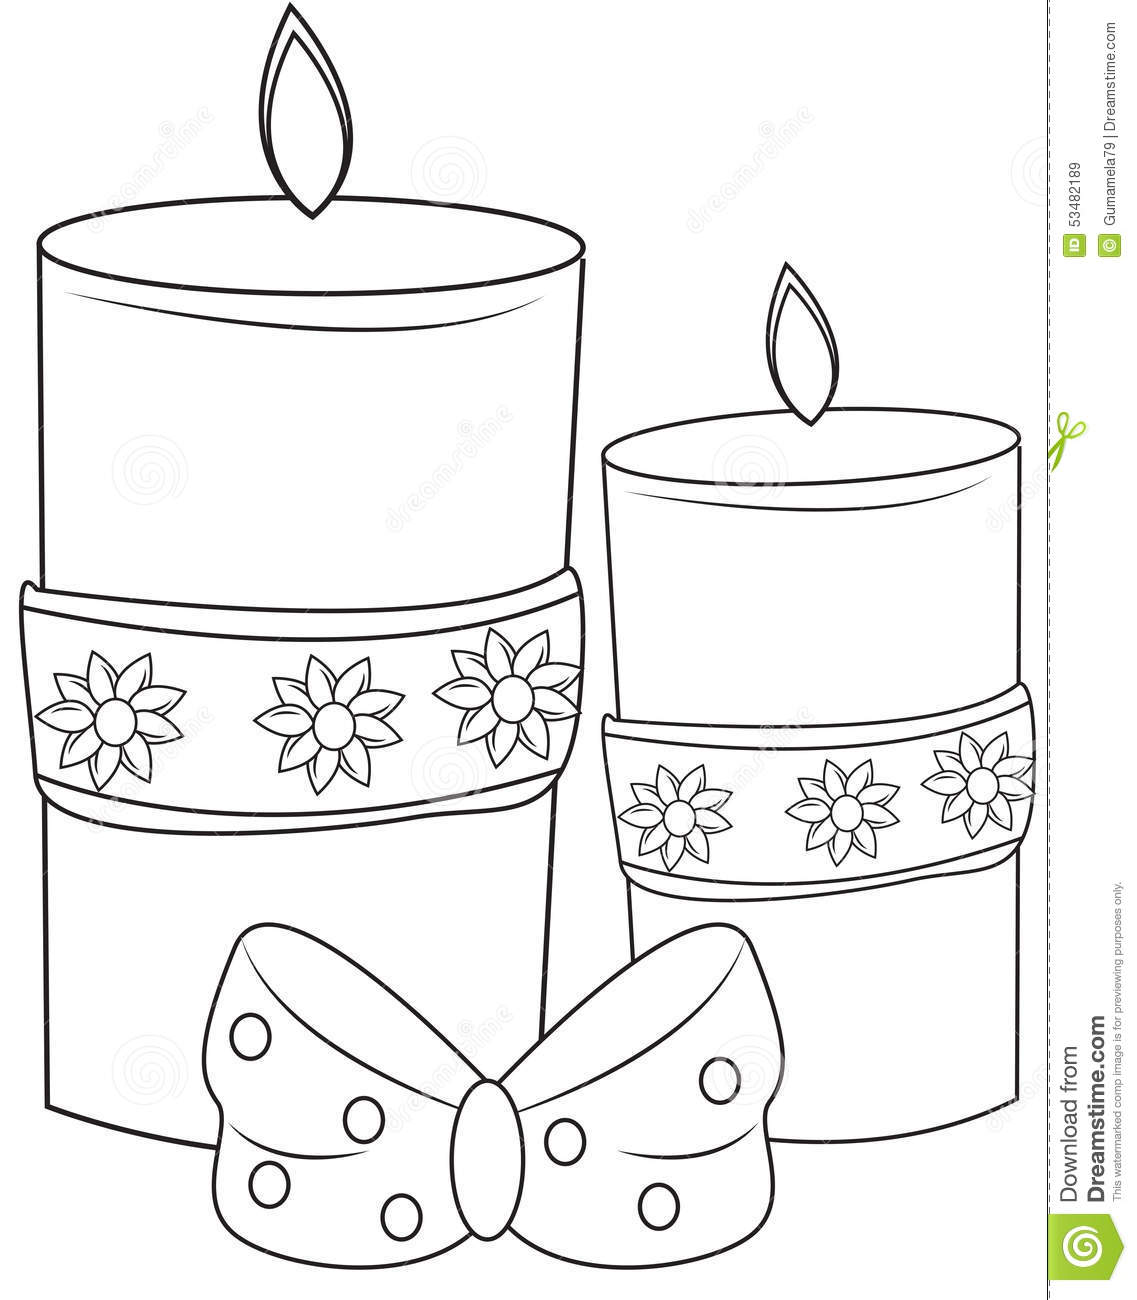 decorative candles coloring page stock illustration